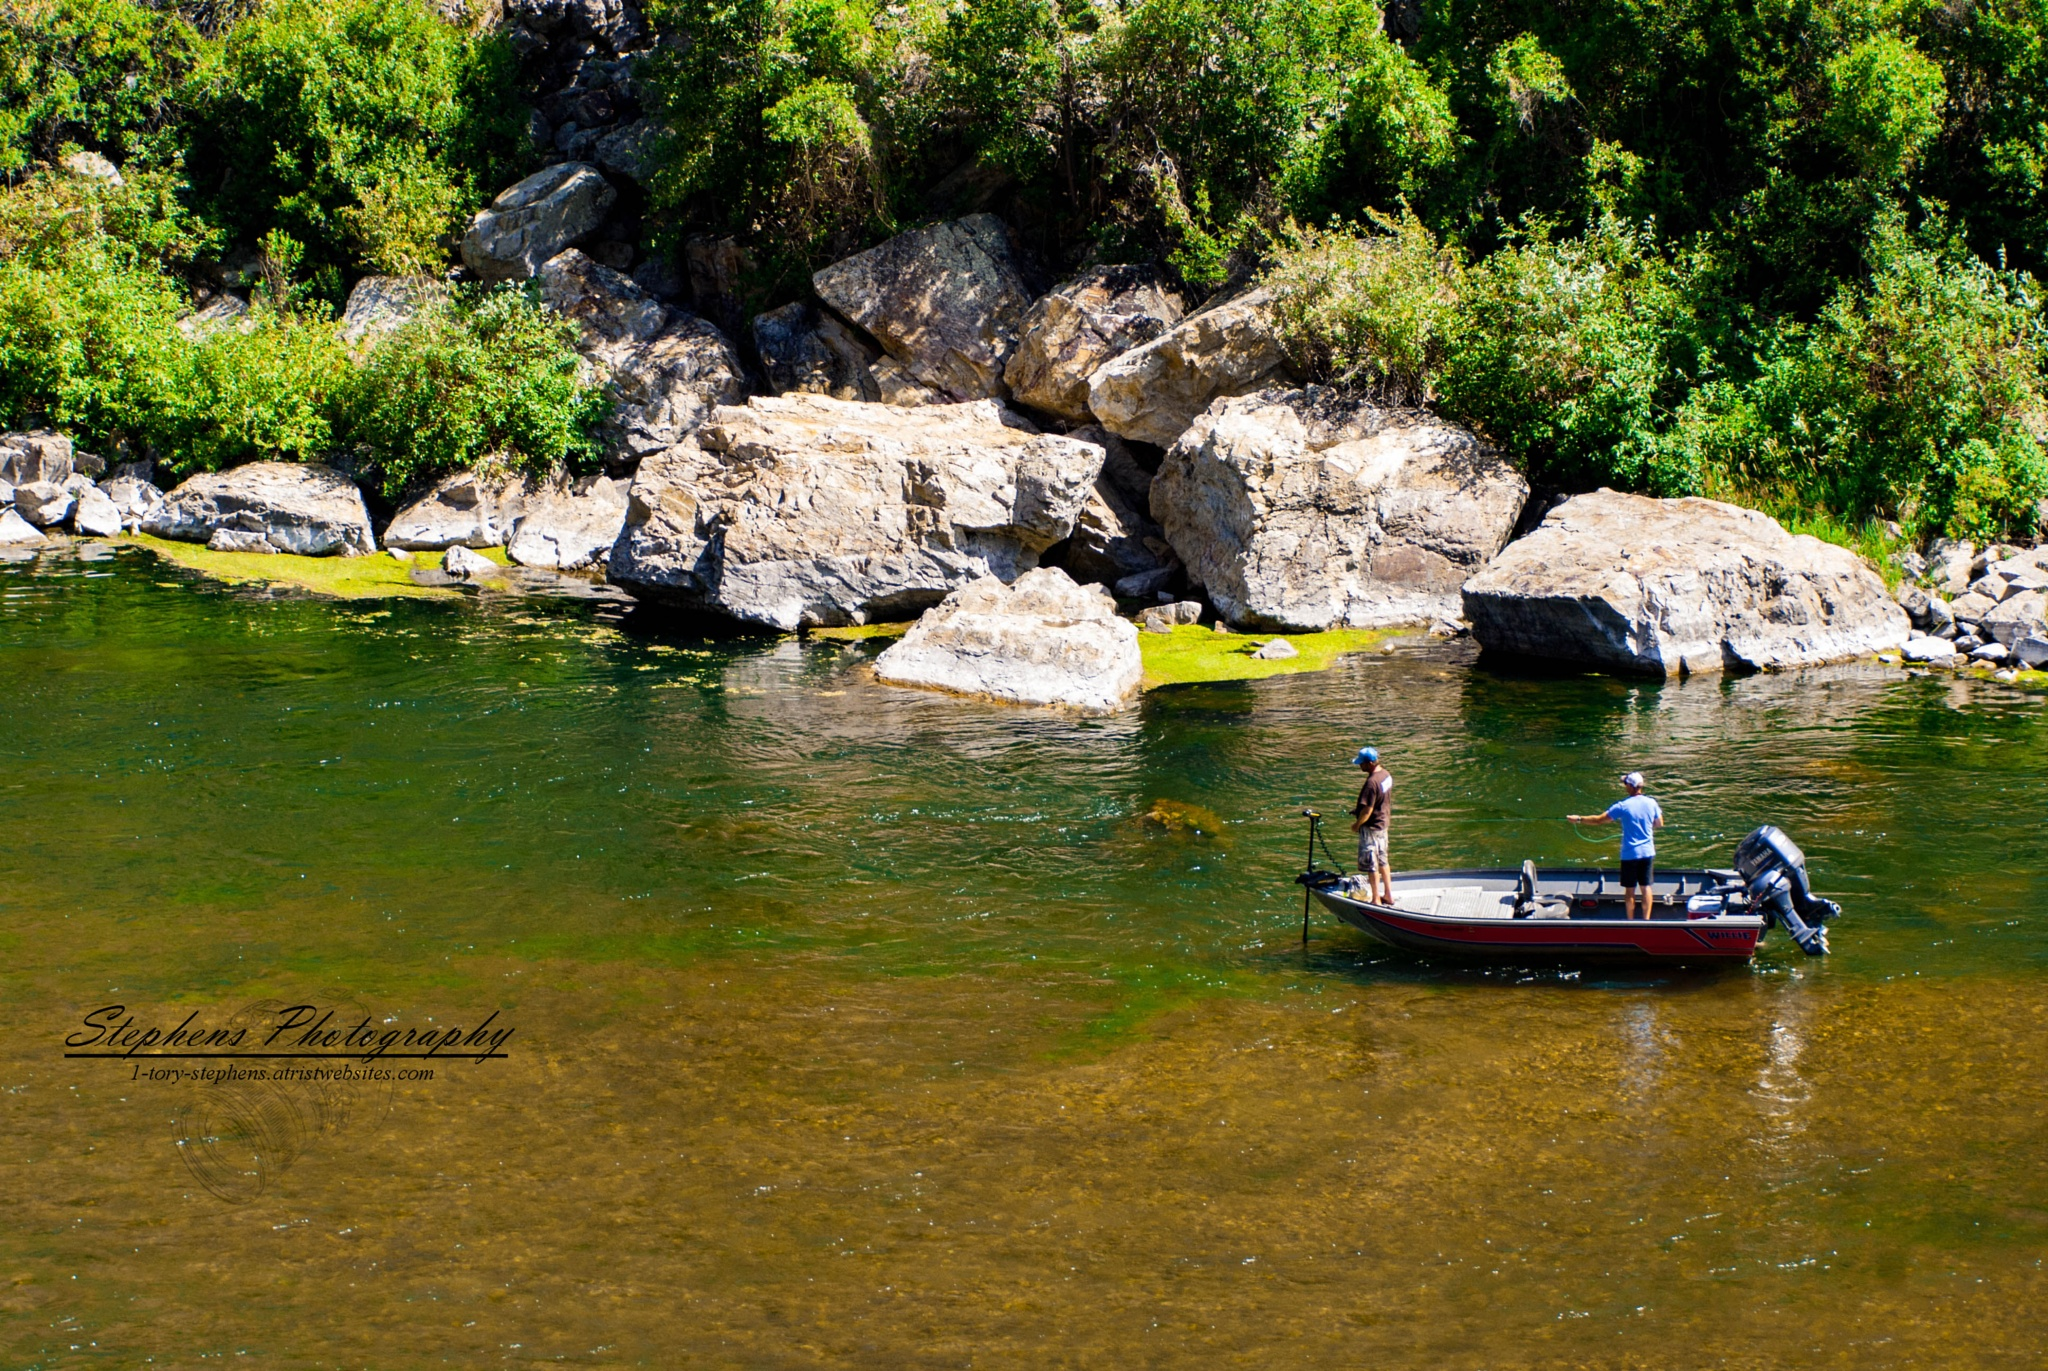 Floating the Missouri by Tory L. Stephens